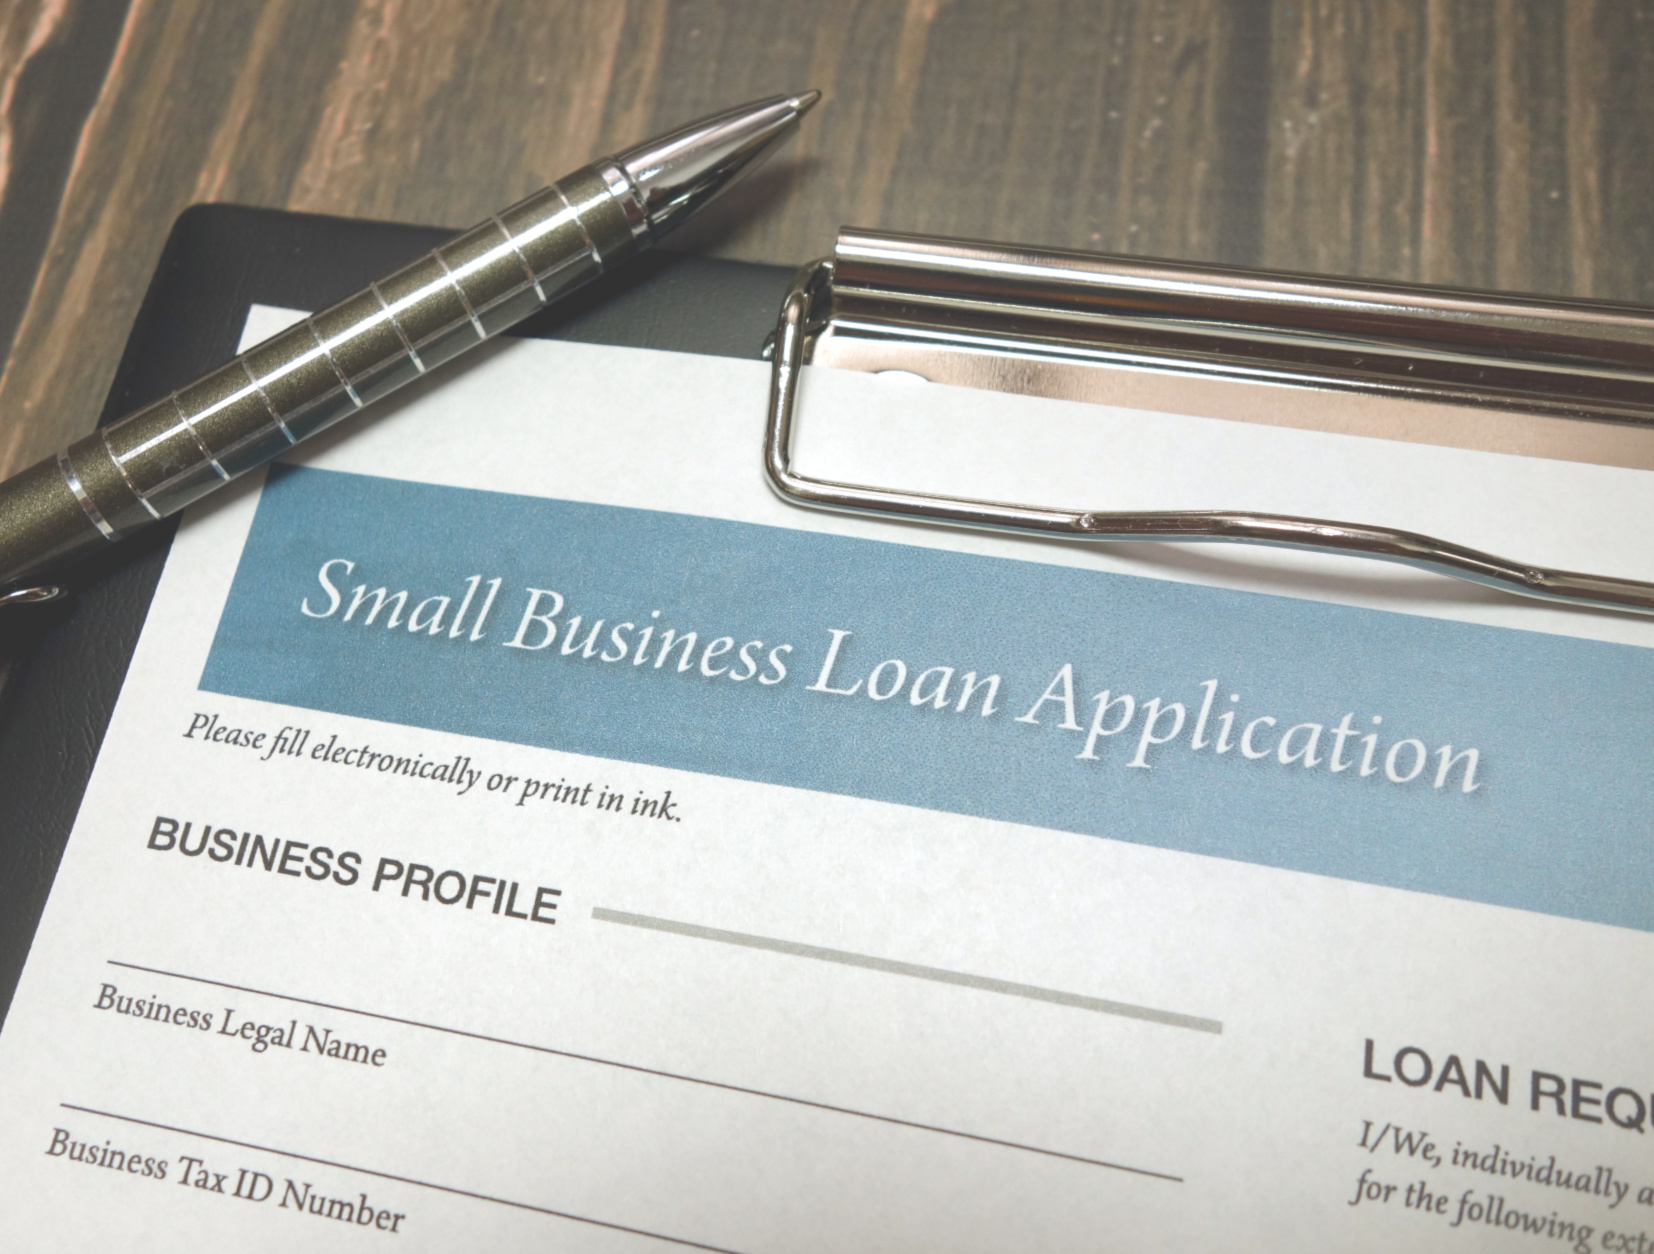 Overview and Comparison of New SBA Loan Opportunities